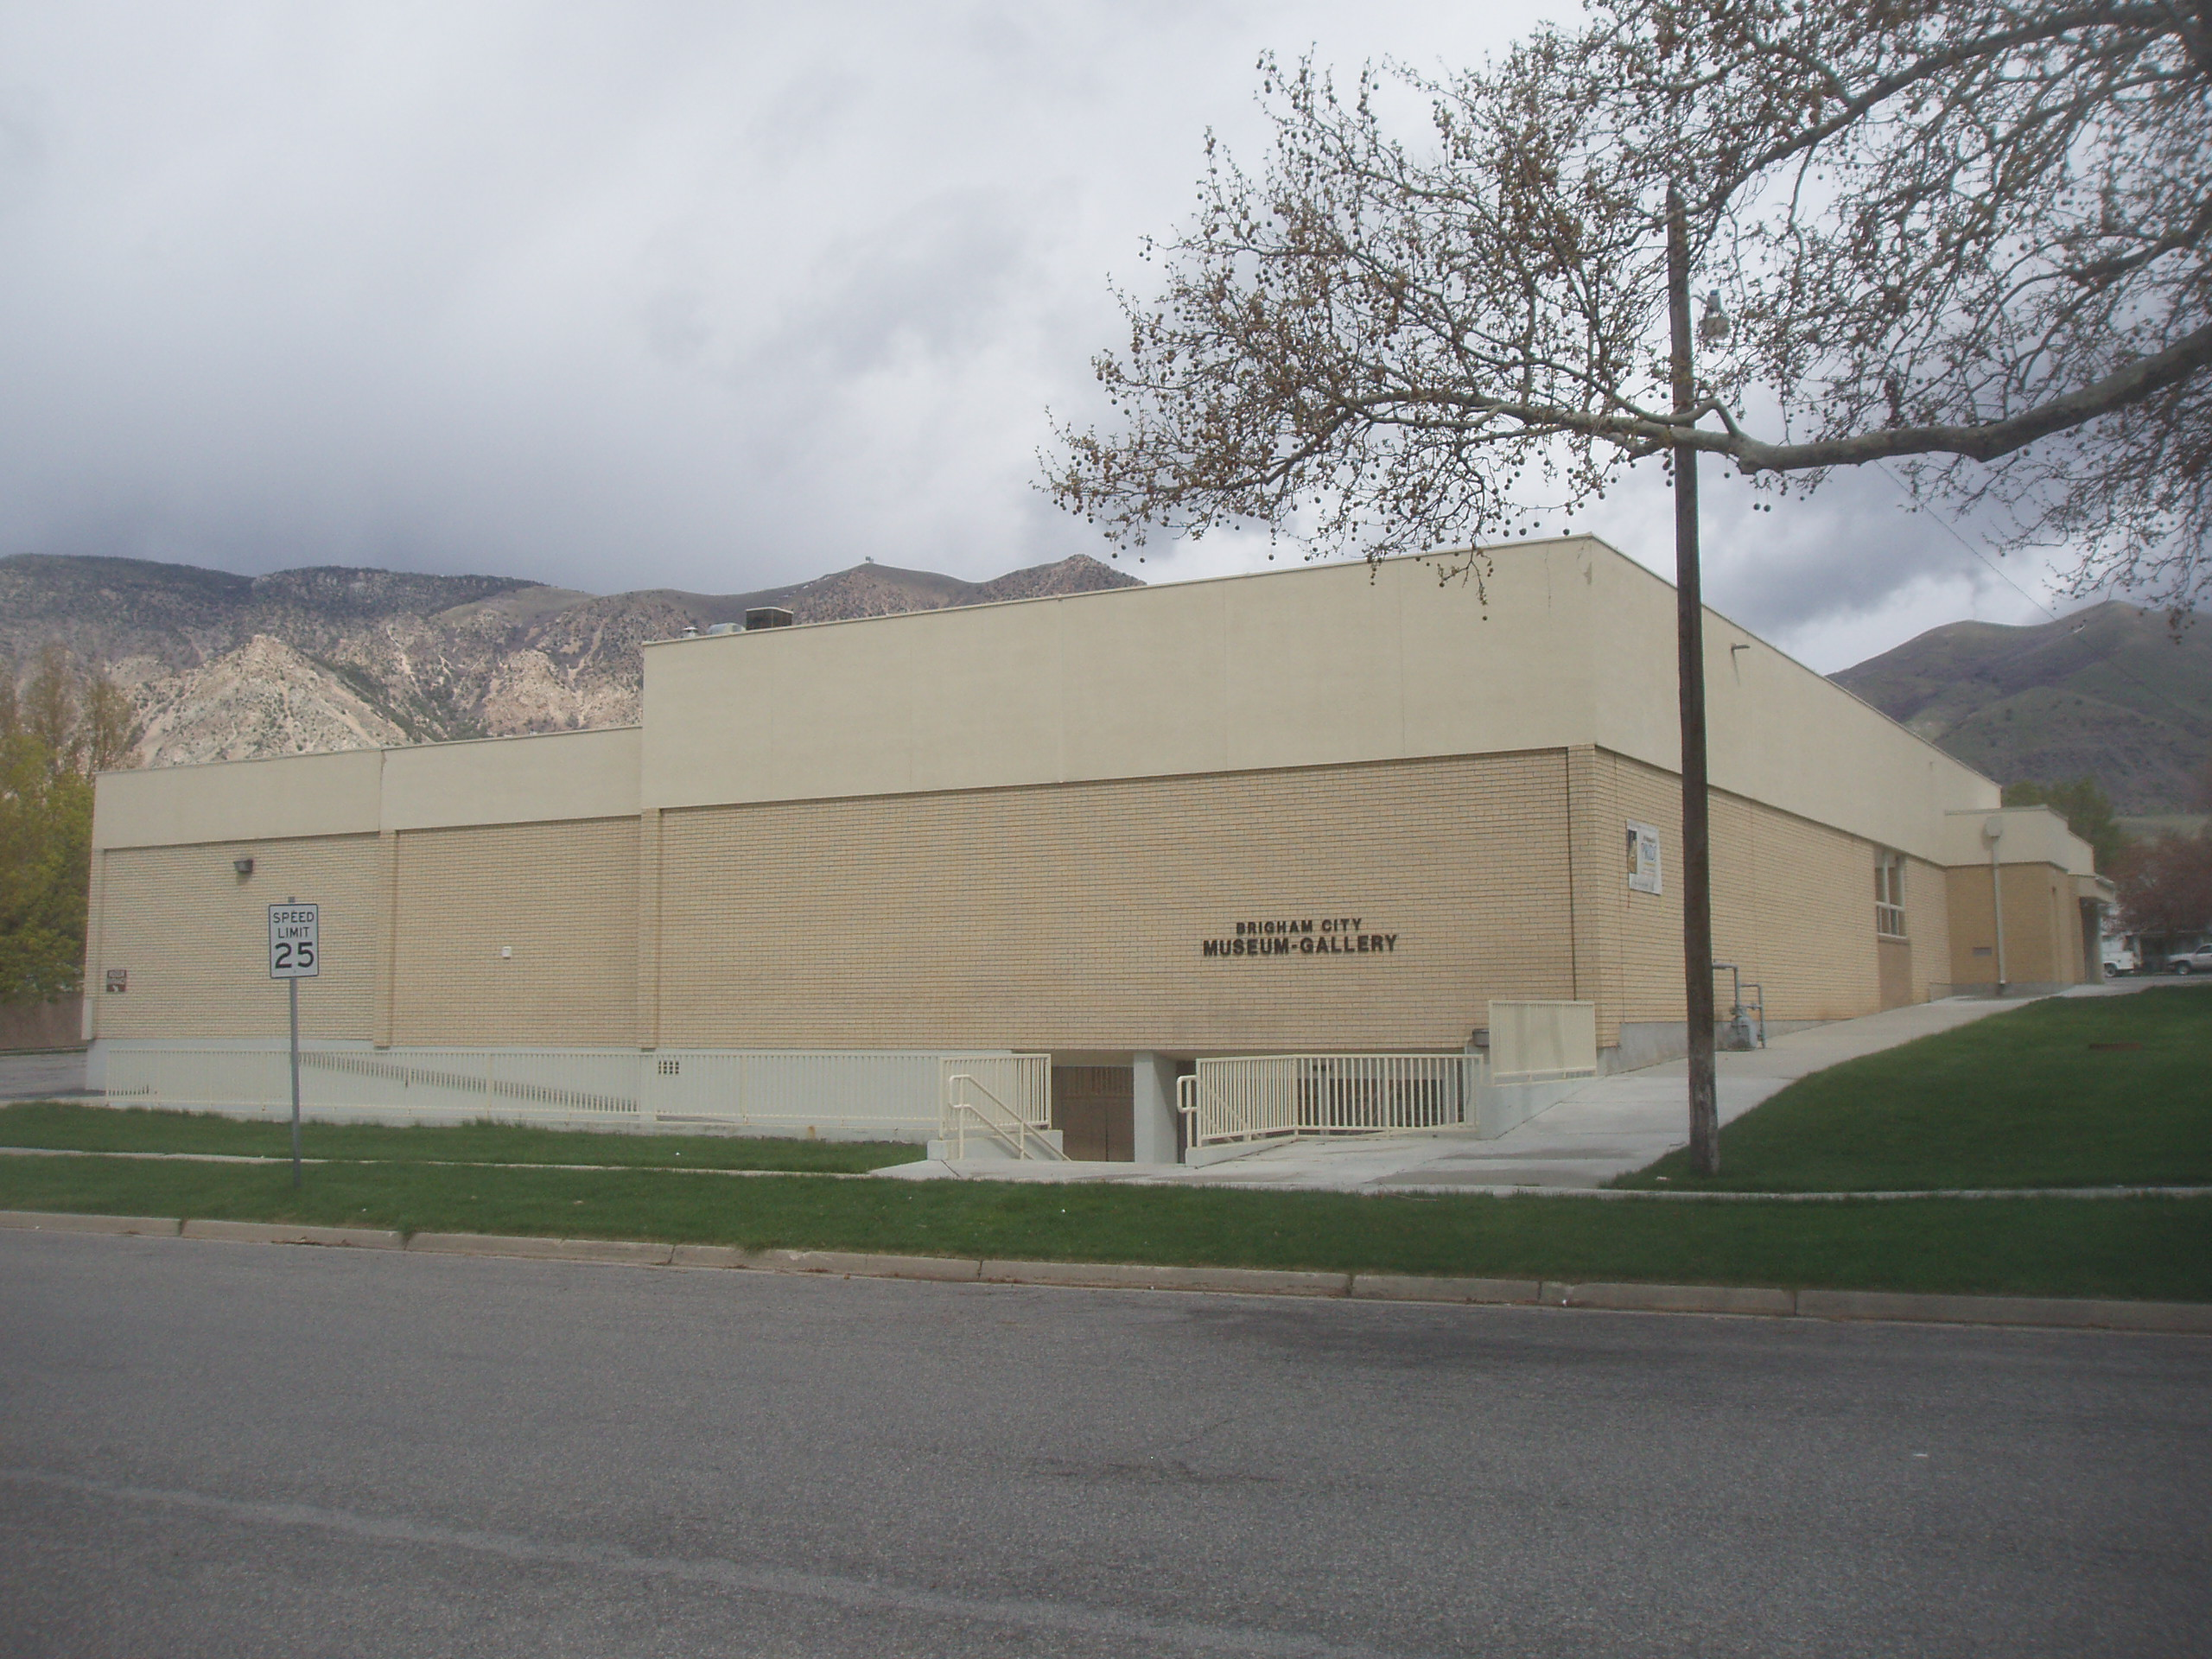 The Brigham City Museum of Art & History preserves this history of the city through its exhibits, collections, and artwork.